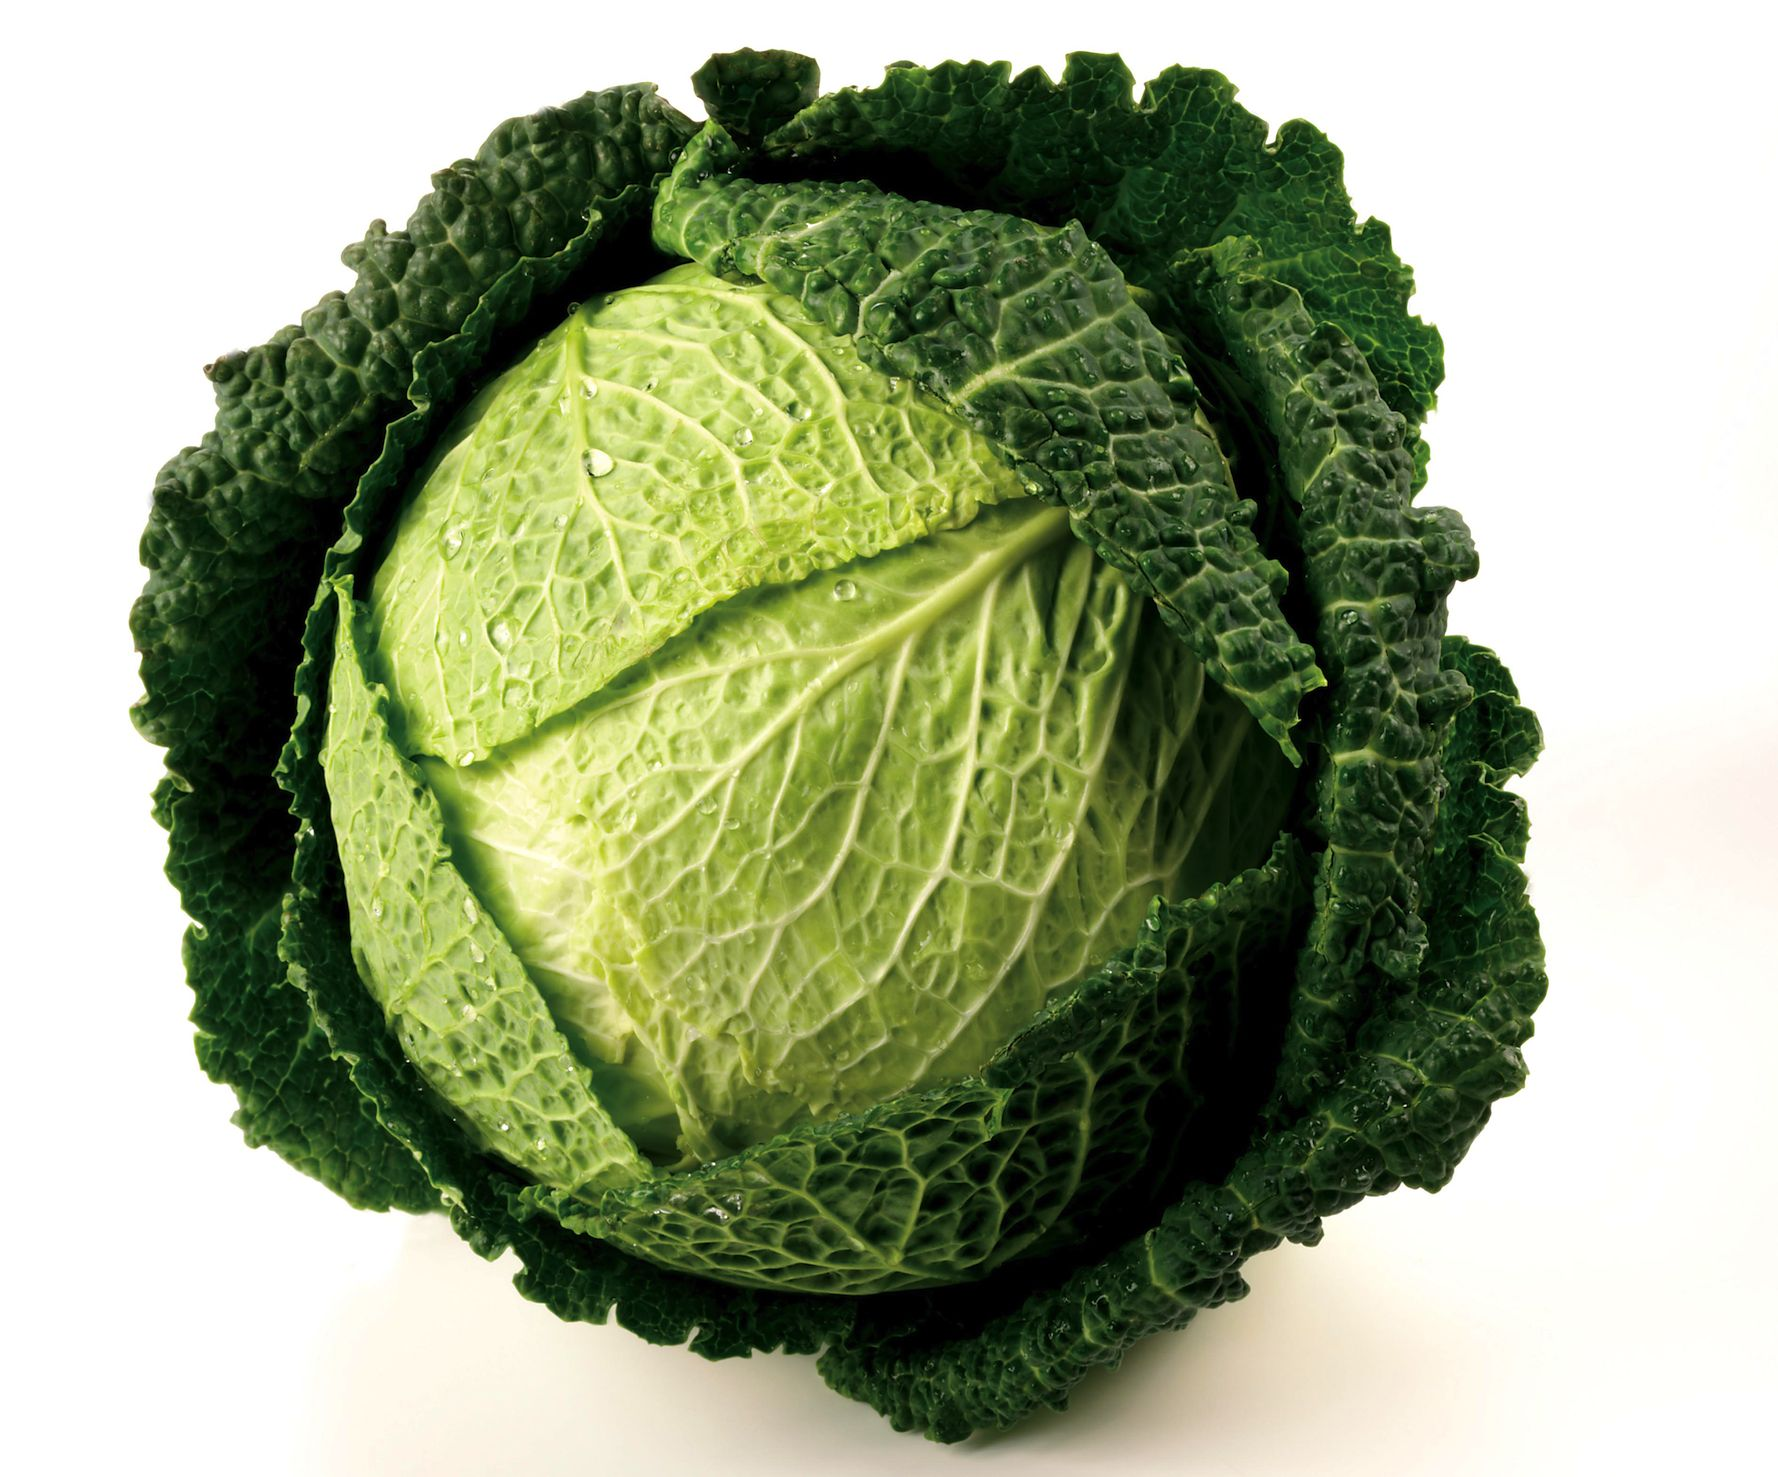 Unusual Cabbage Kind 3155.36 Kb